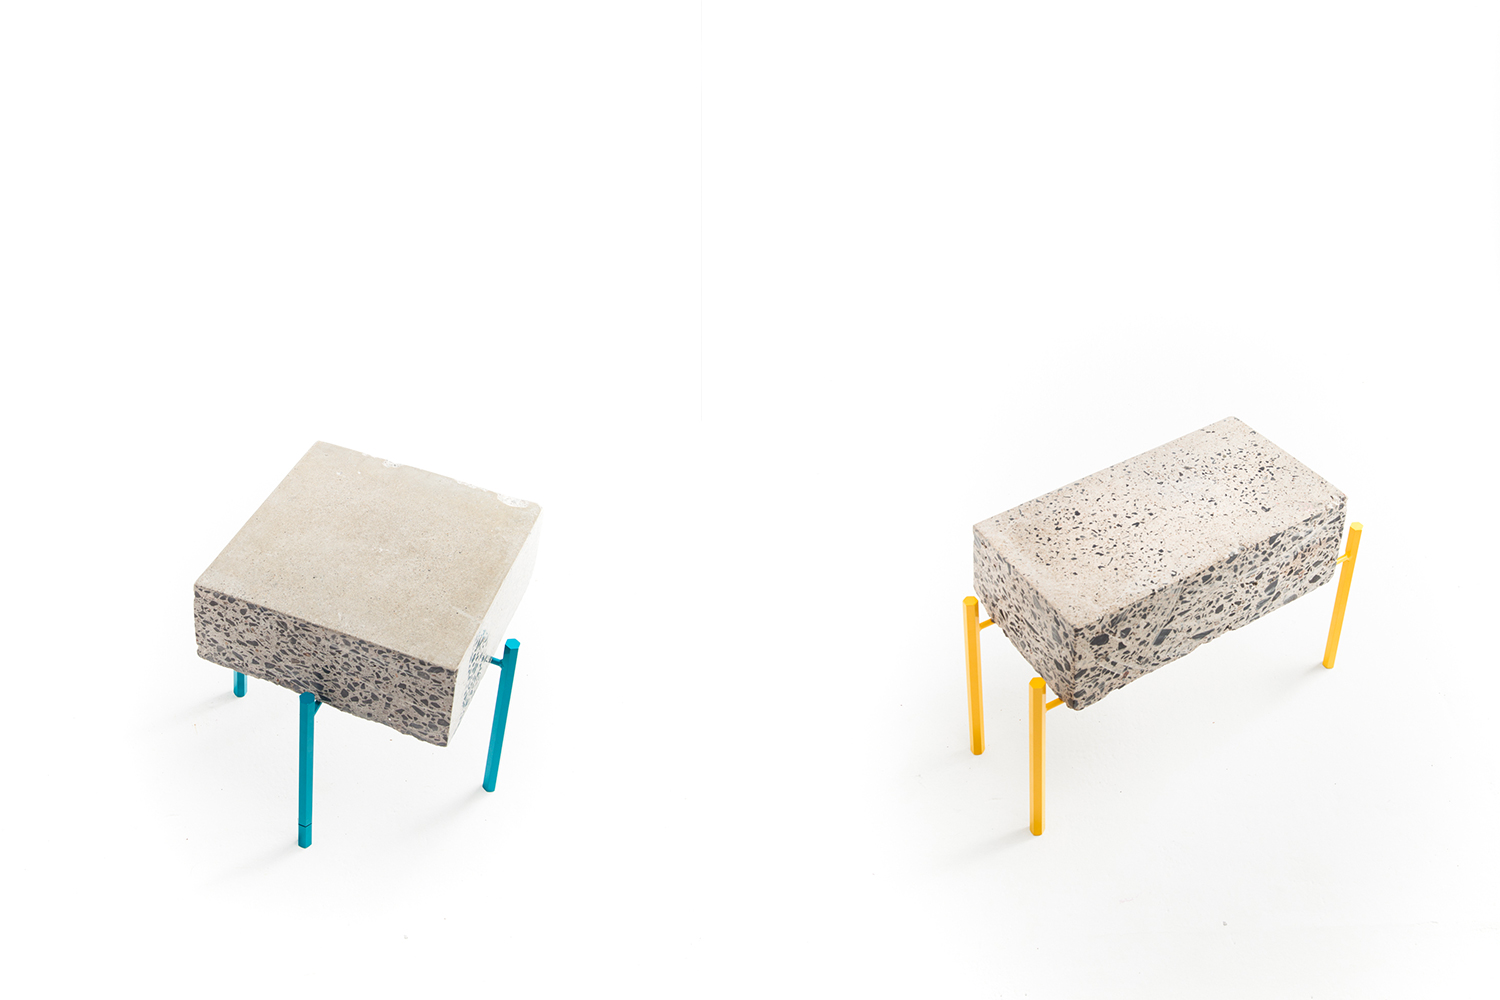 Small coffee table made of recycled concrete scrap. Metal frame made to measure, light and bright color. Legs made of hexagonal yellow or turquoise metal rods.